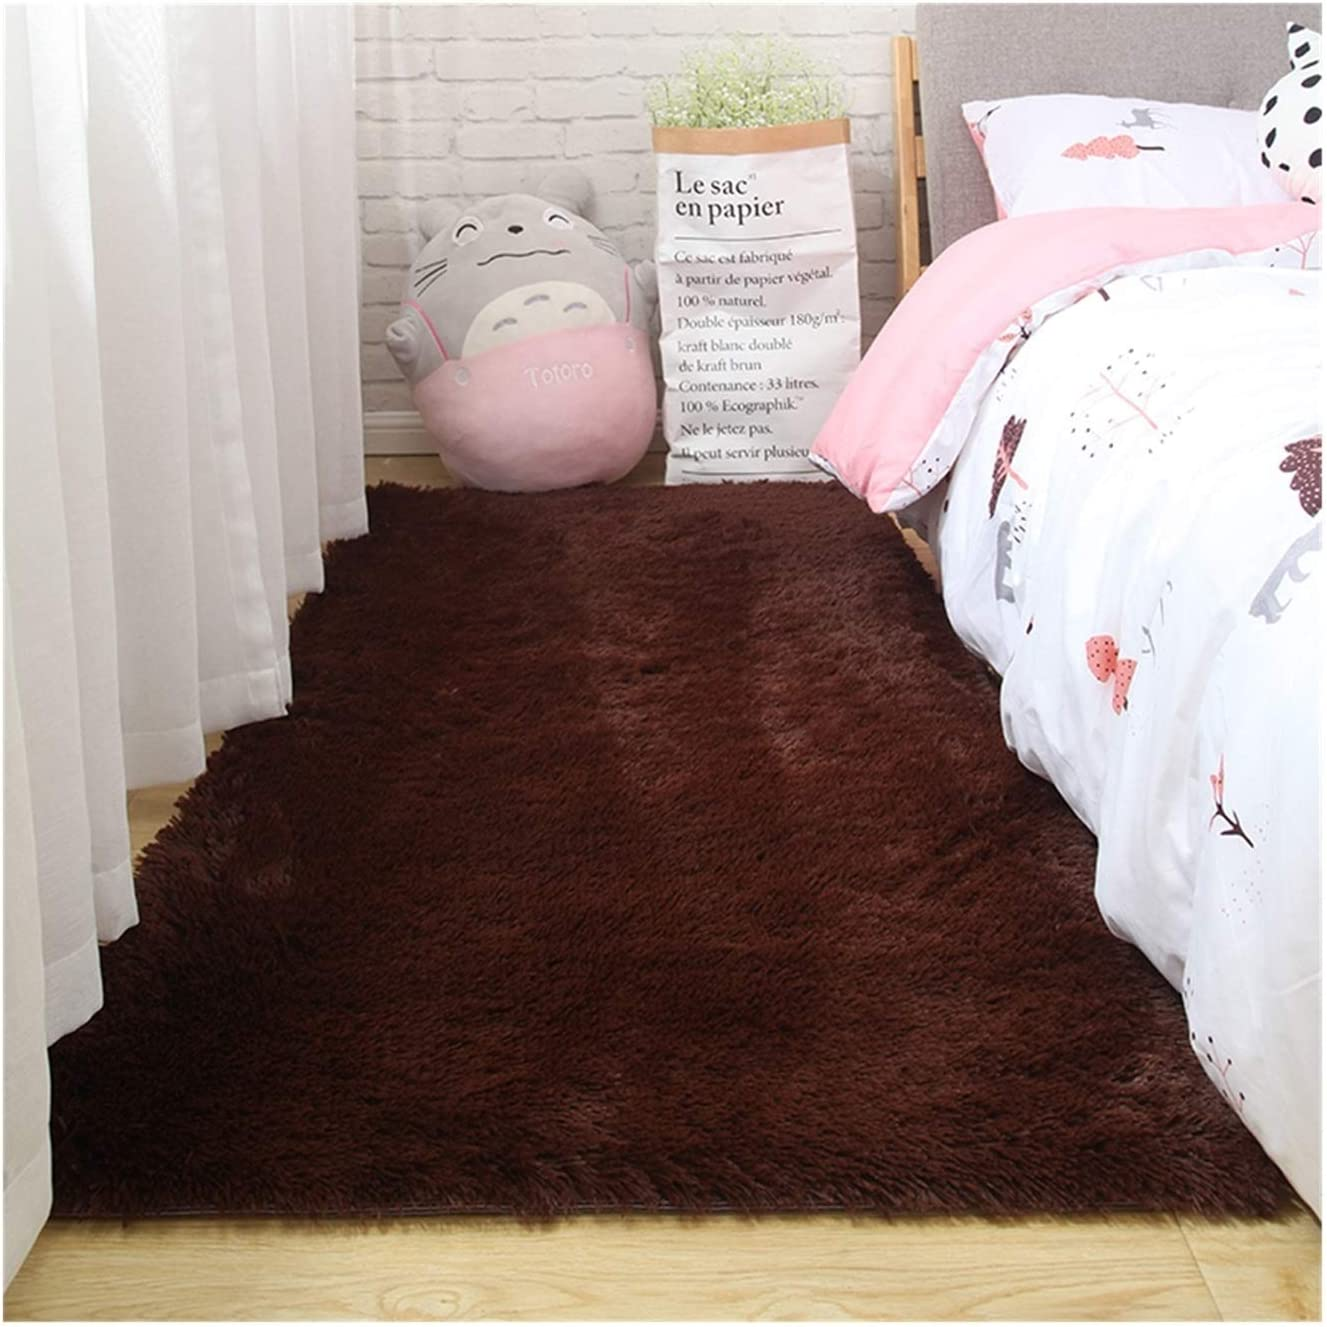 WAZG Max 42% OFF Ranking TOP19 SYBLD Fluffy Tie-dye Carpet M for Bedroom Decoration Used